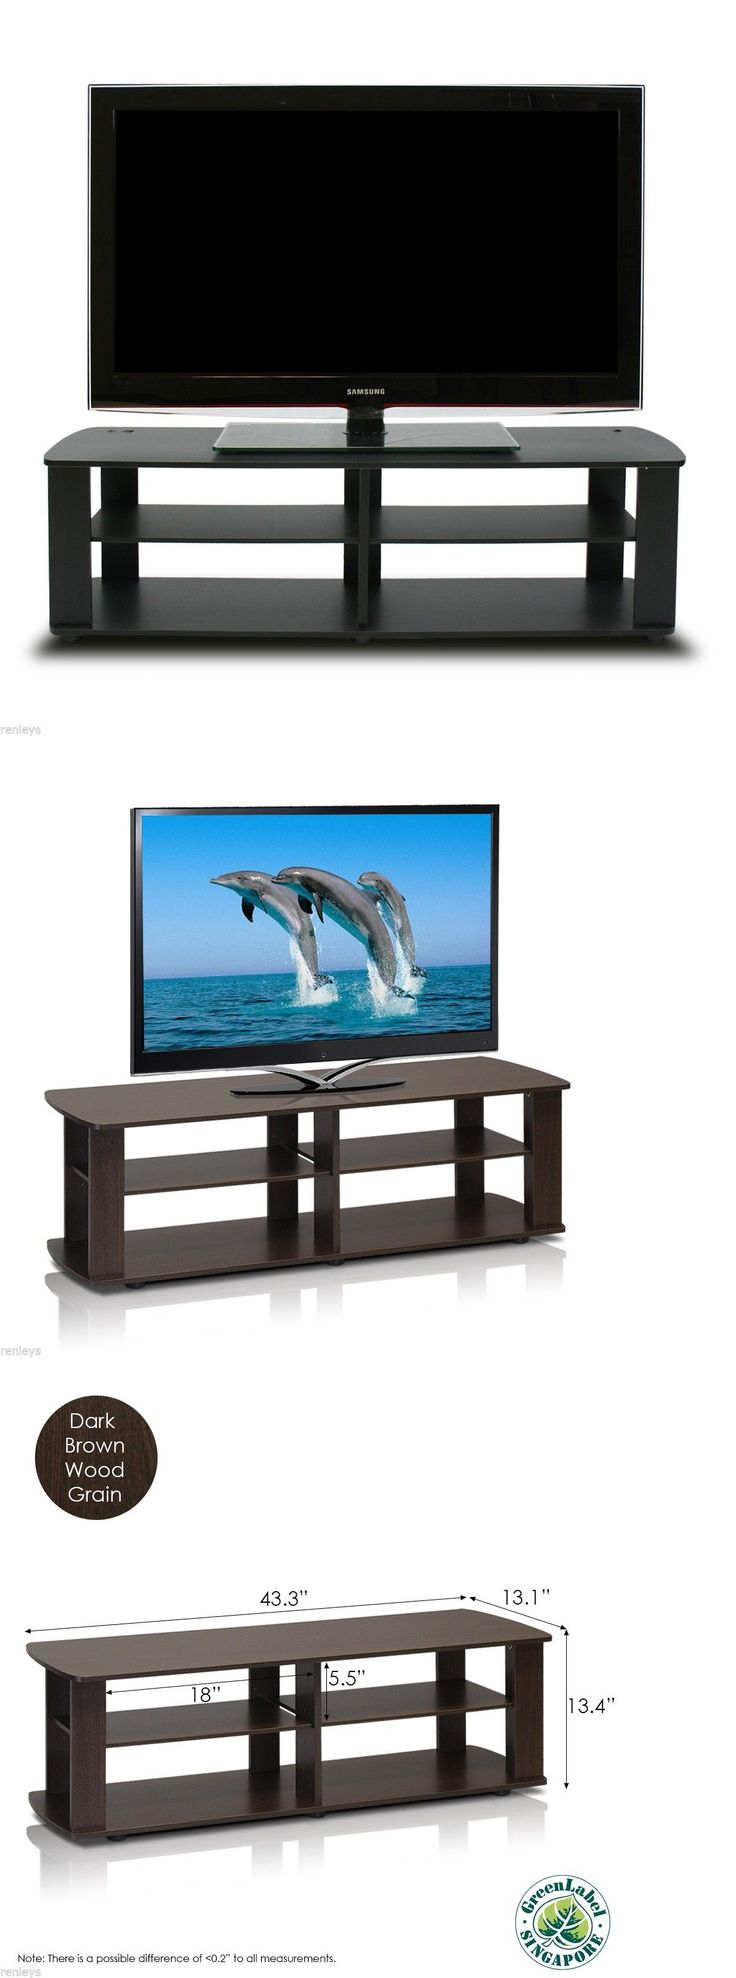 Entertainment Units TV Stands 20488: Black Tv Stand Media Entertainment Center 42 50 60 Inch Flat Screen Television -> BUY IT NOW ONLY: $33.38 on eBay!